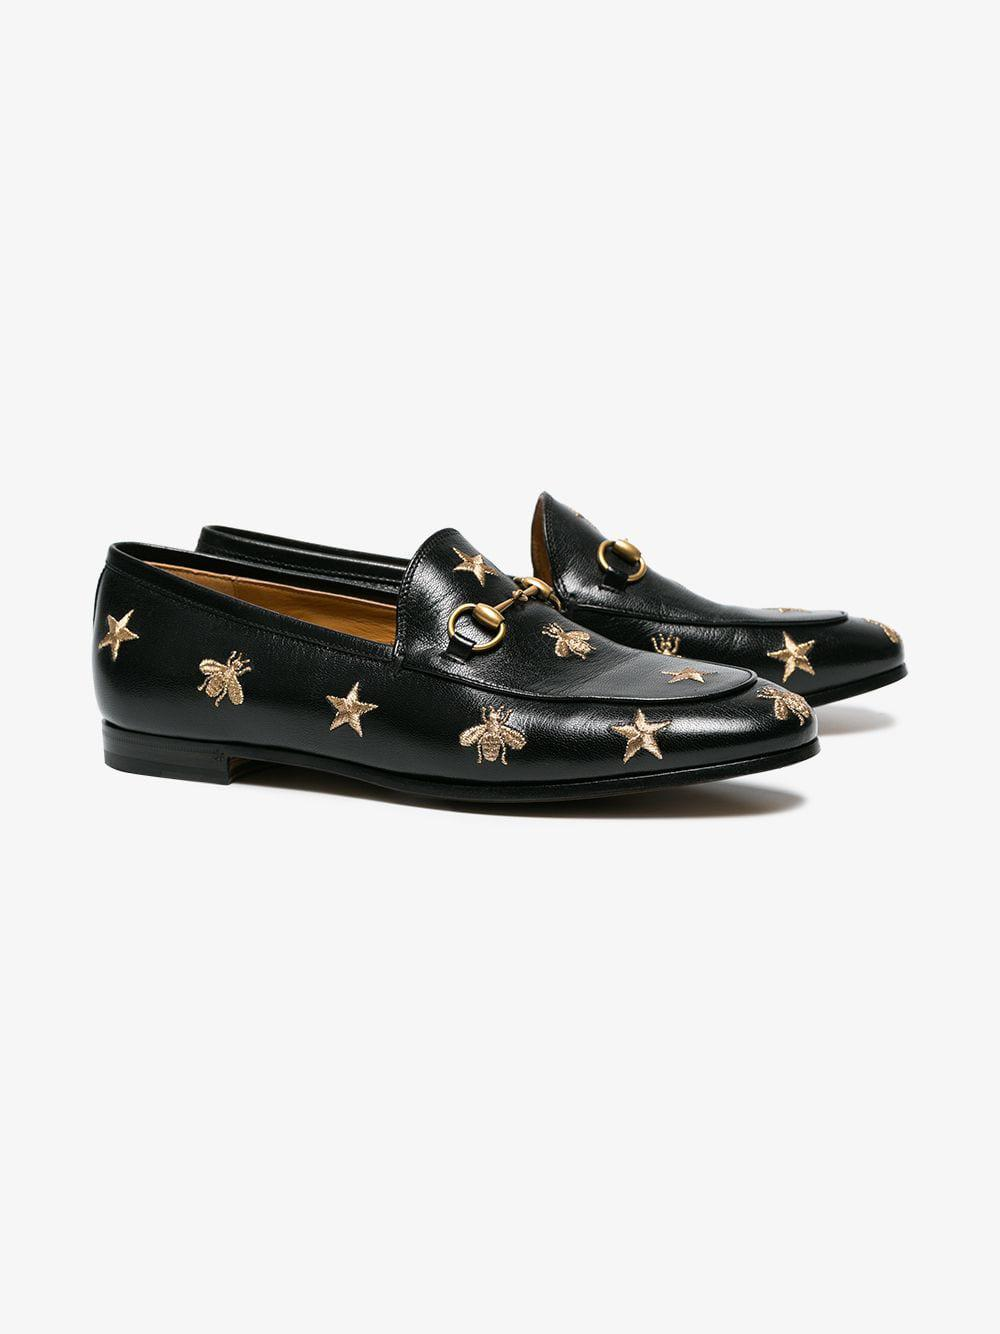 4e118694df4 Gucci - Black Jordaan Embroidered Leather Loafer - Lyst. View fullscreen